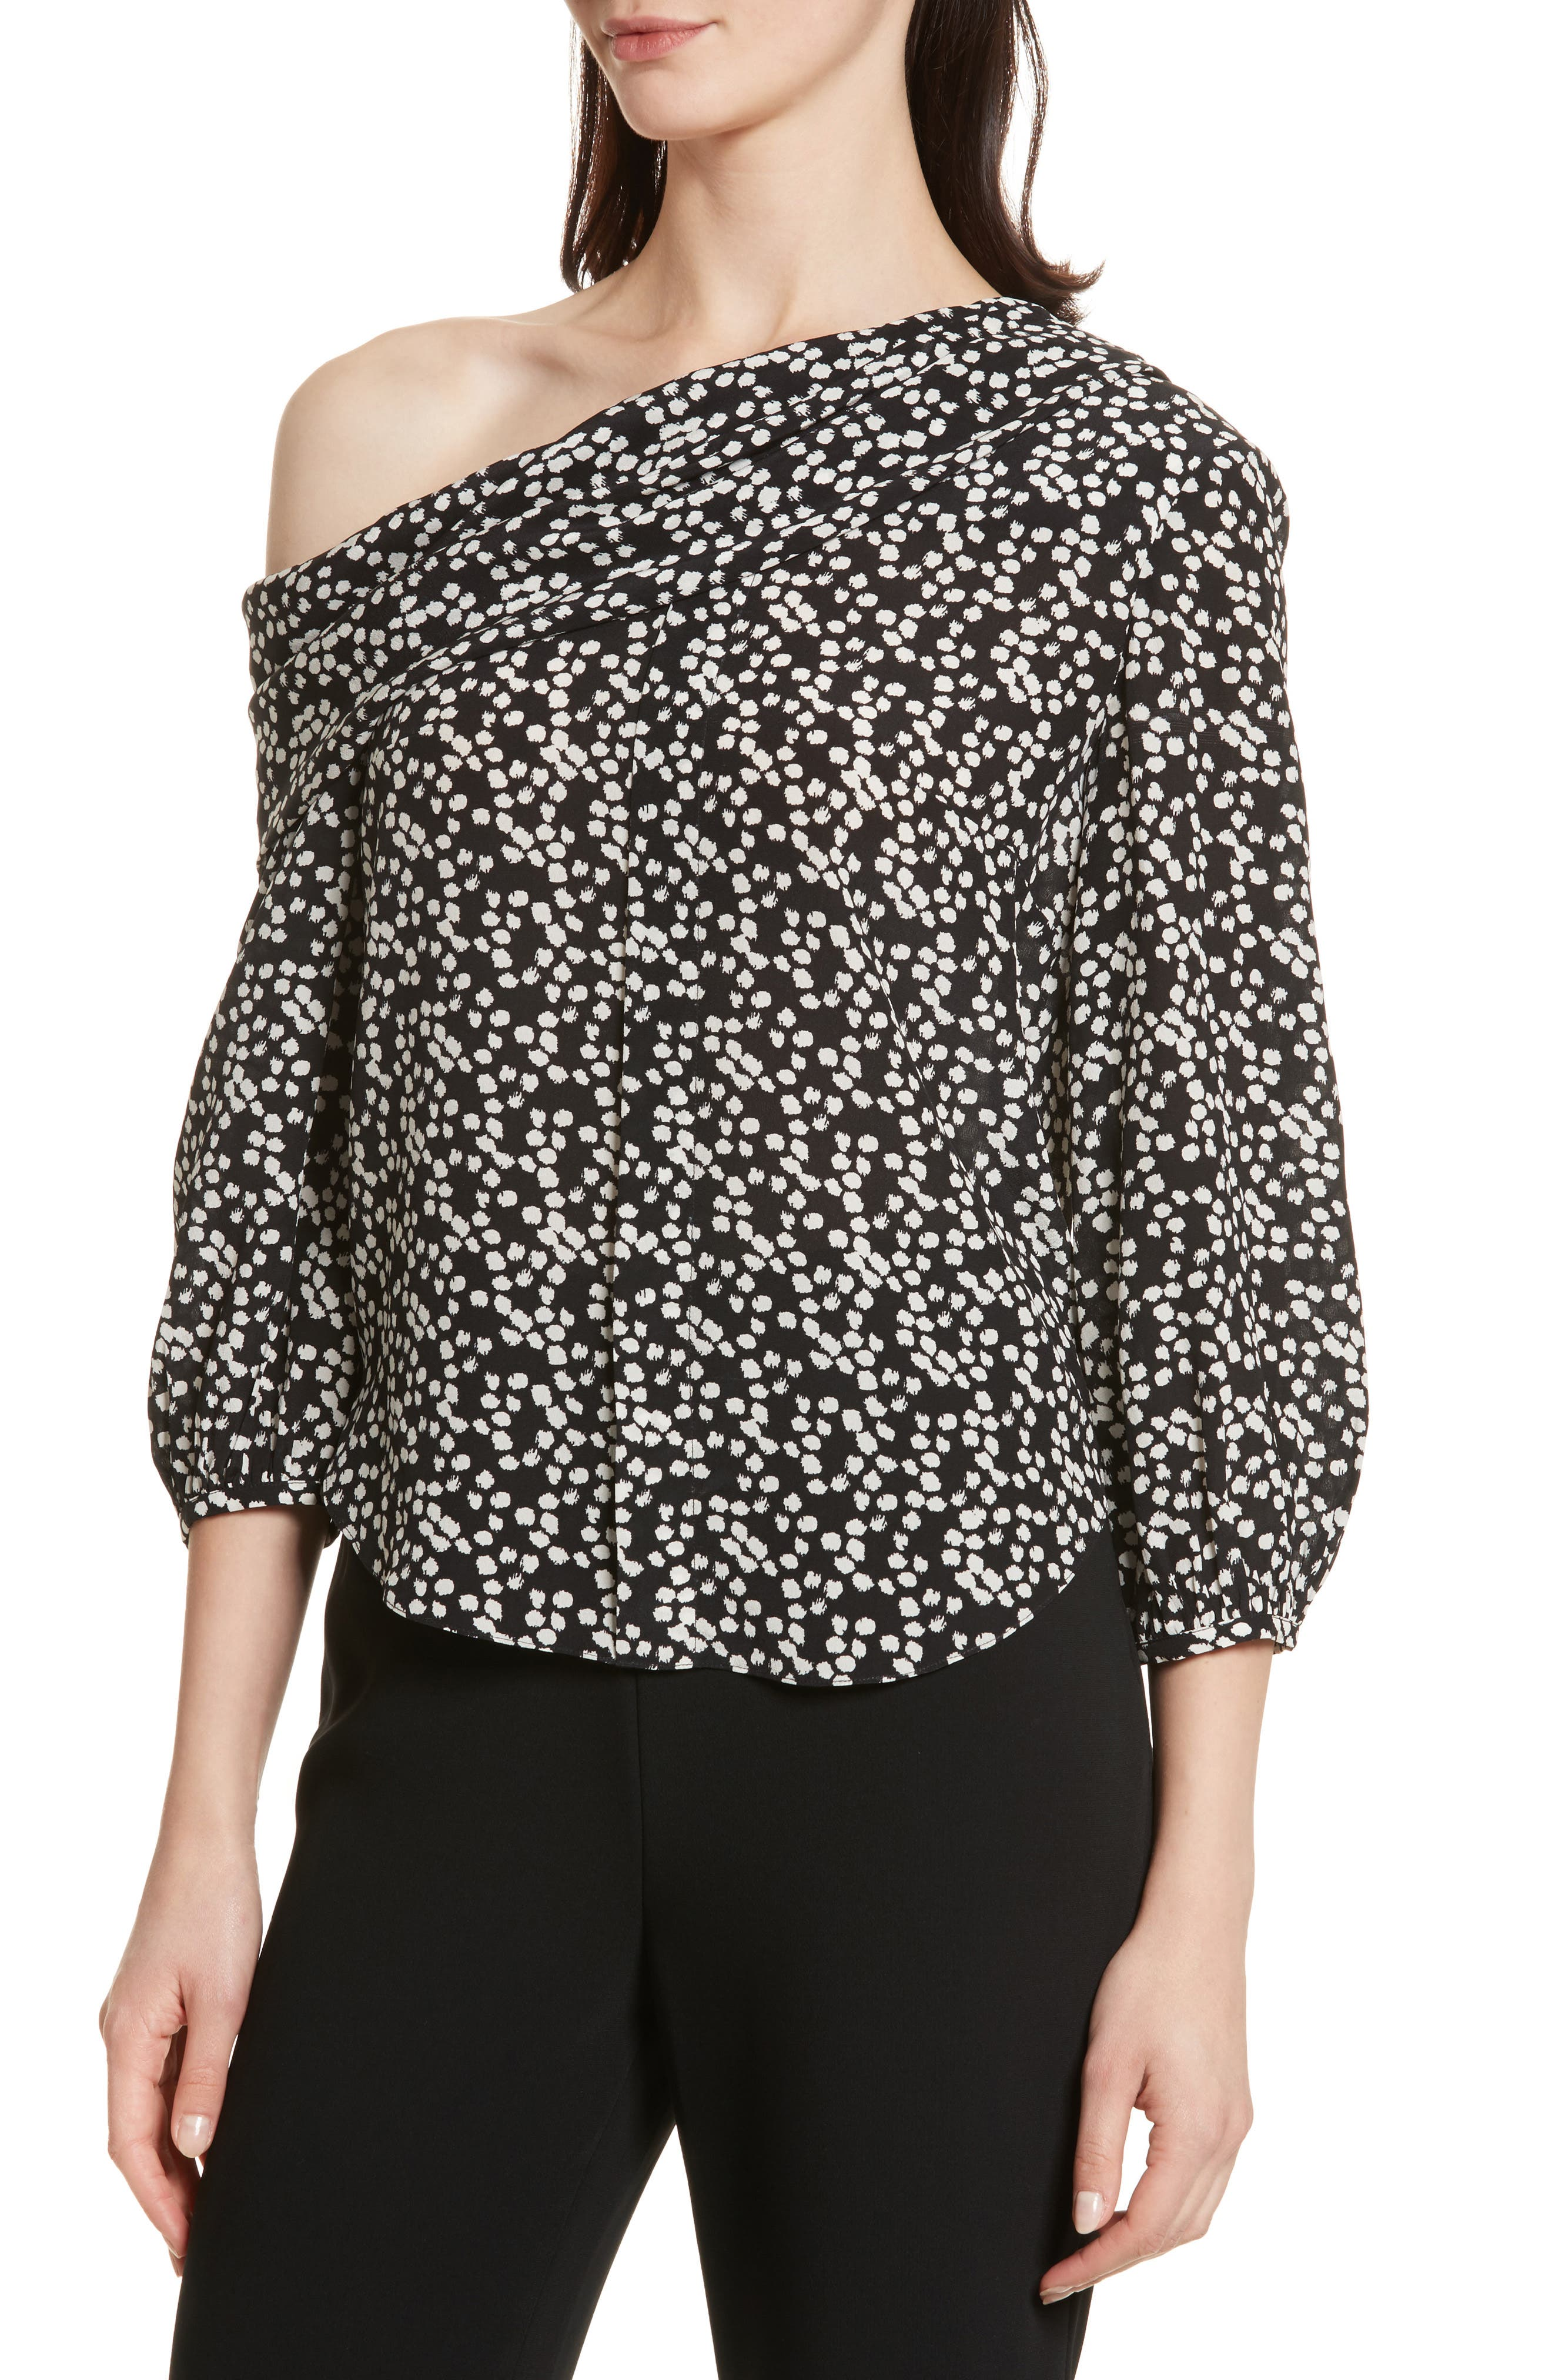 Ness Print Silk Off the Shoulder Top,                             Alternate thumbnail 4, color,                             005